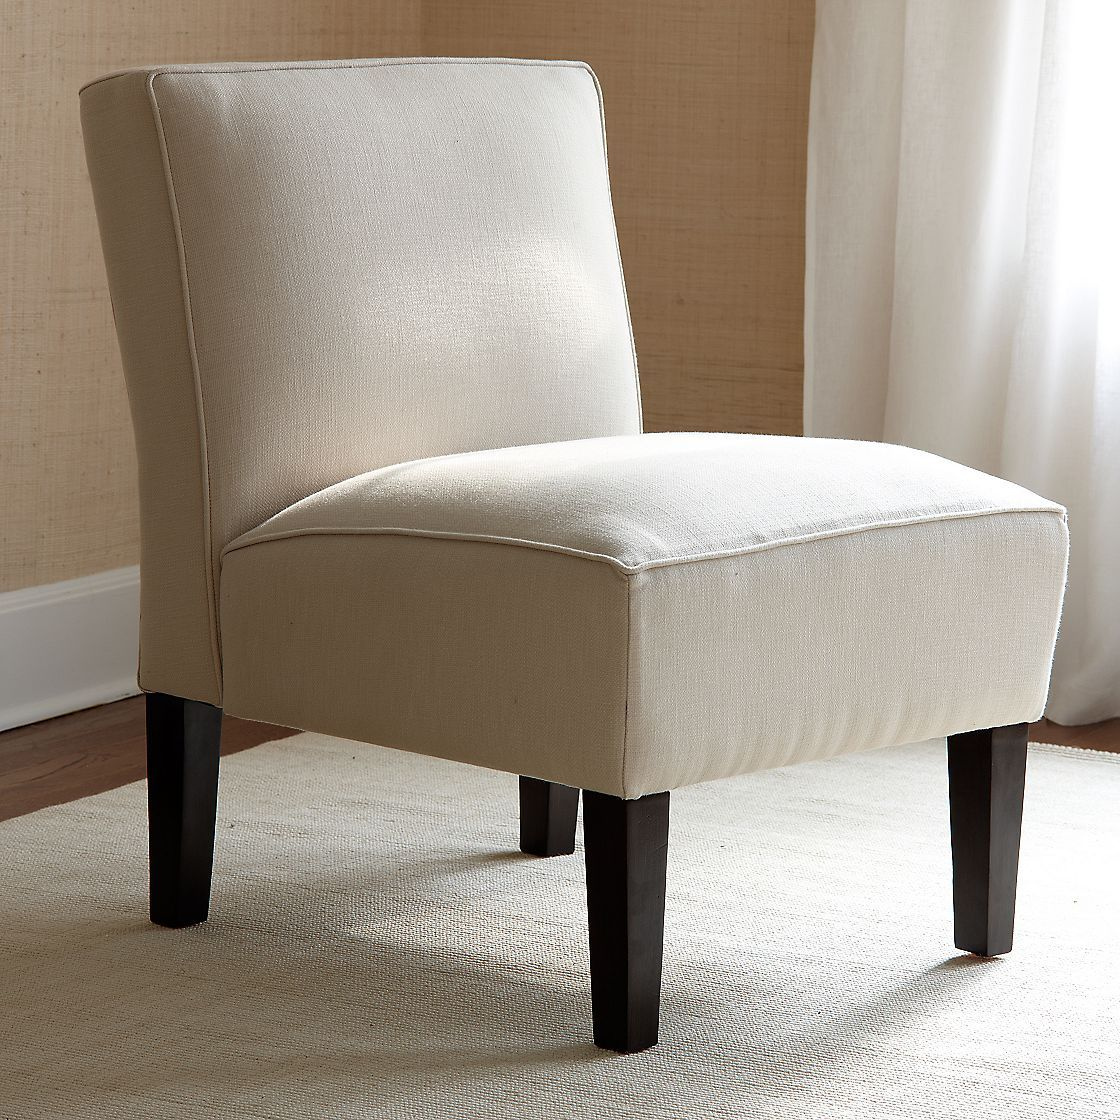 Company Store Mercer Armless Chair Like the clean lines